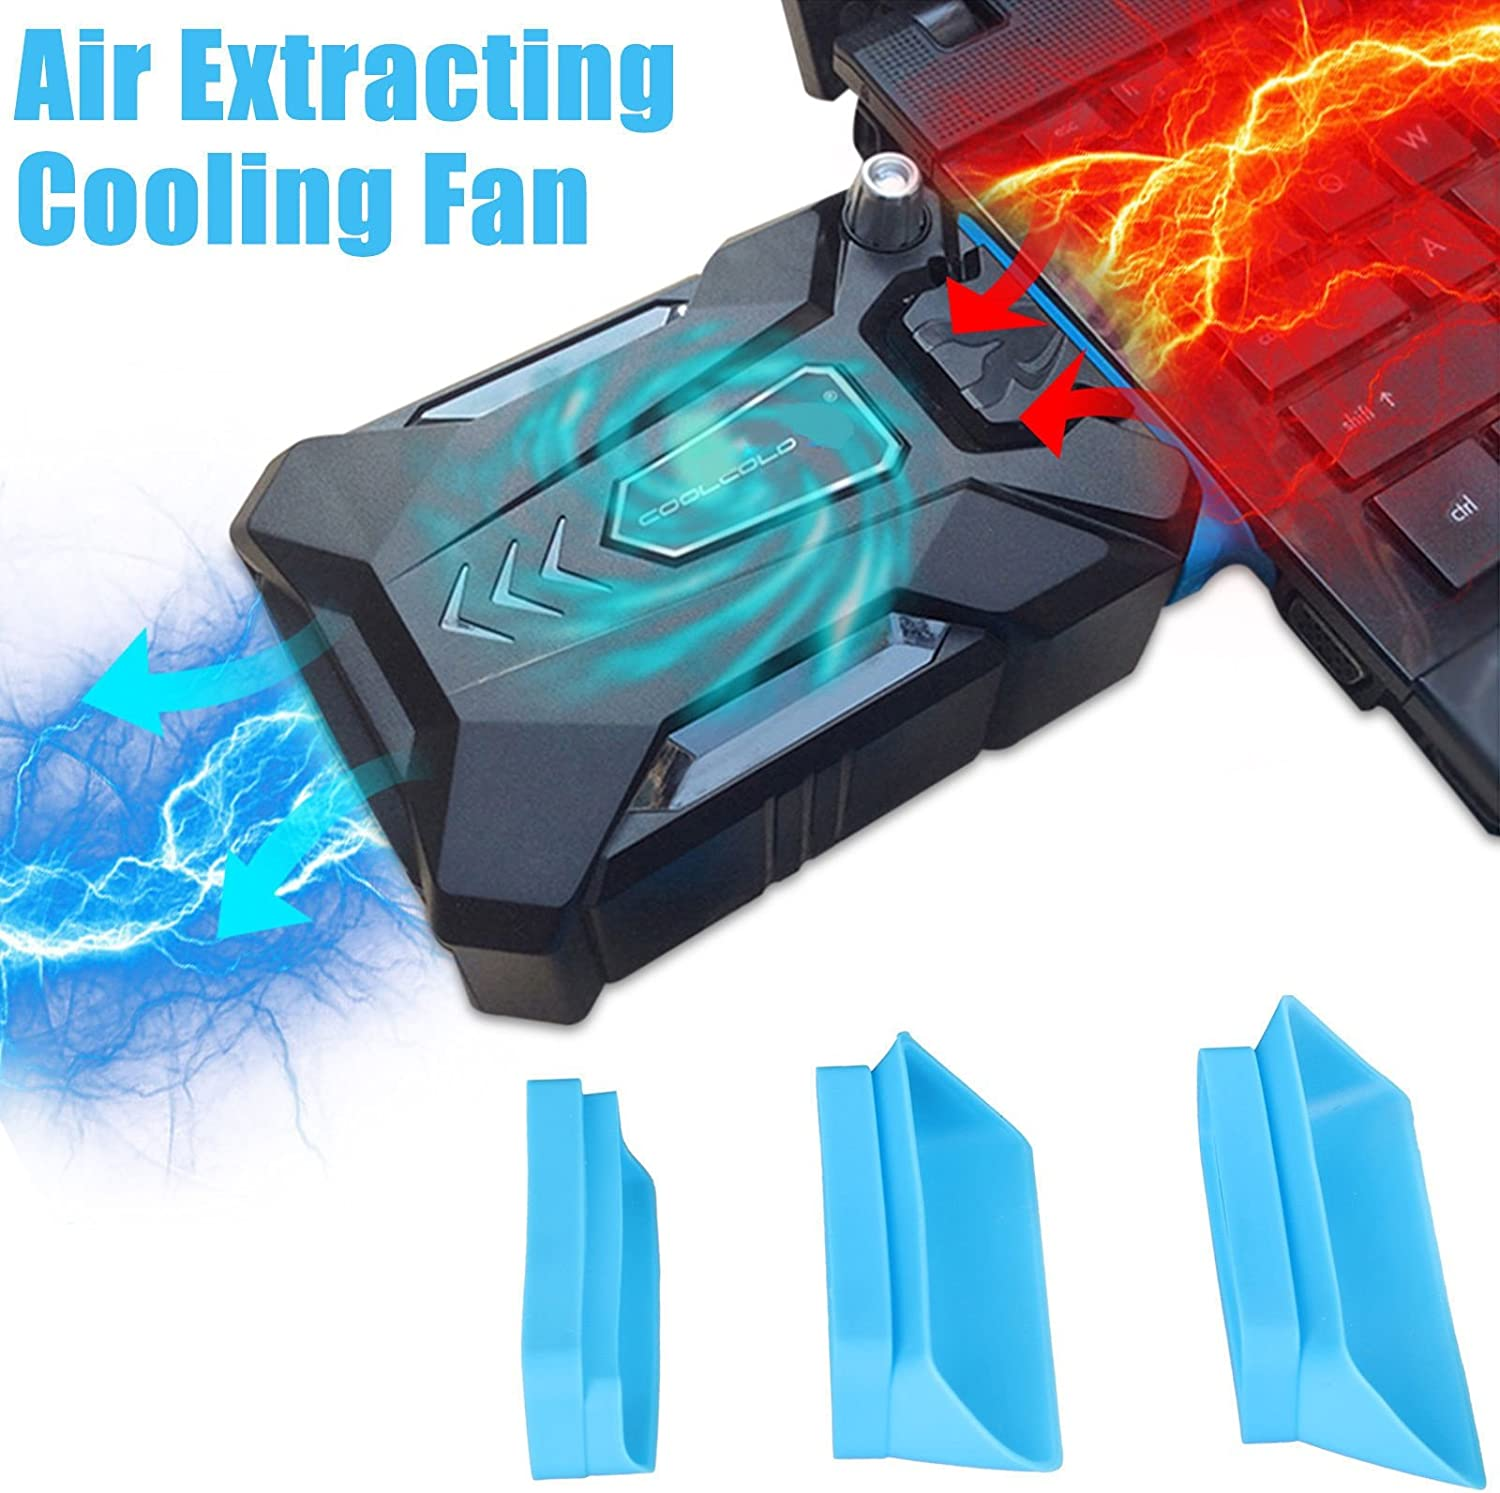 Bestyu Mini Vacuum Air Extracting USB Cooling Pad Cooler Fan For Macbook Pro Dell HP Notebook Laptop PC